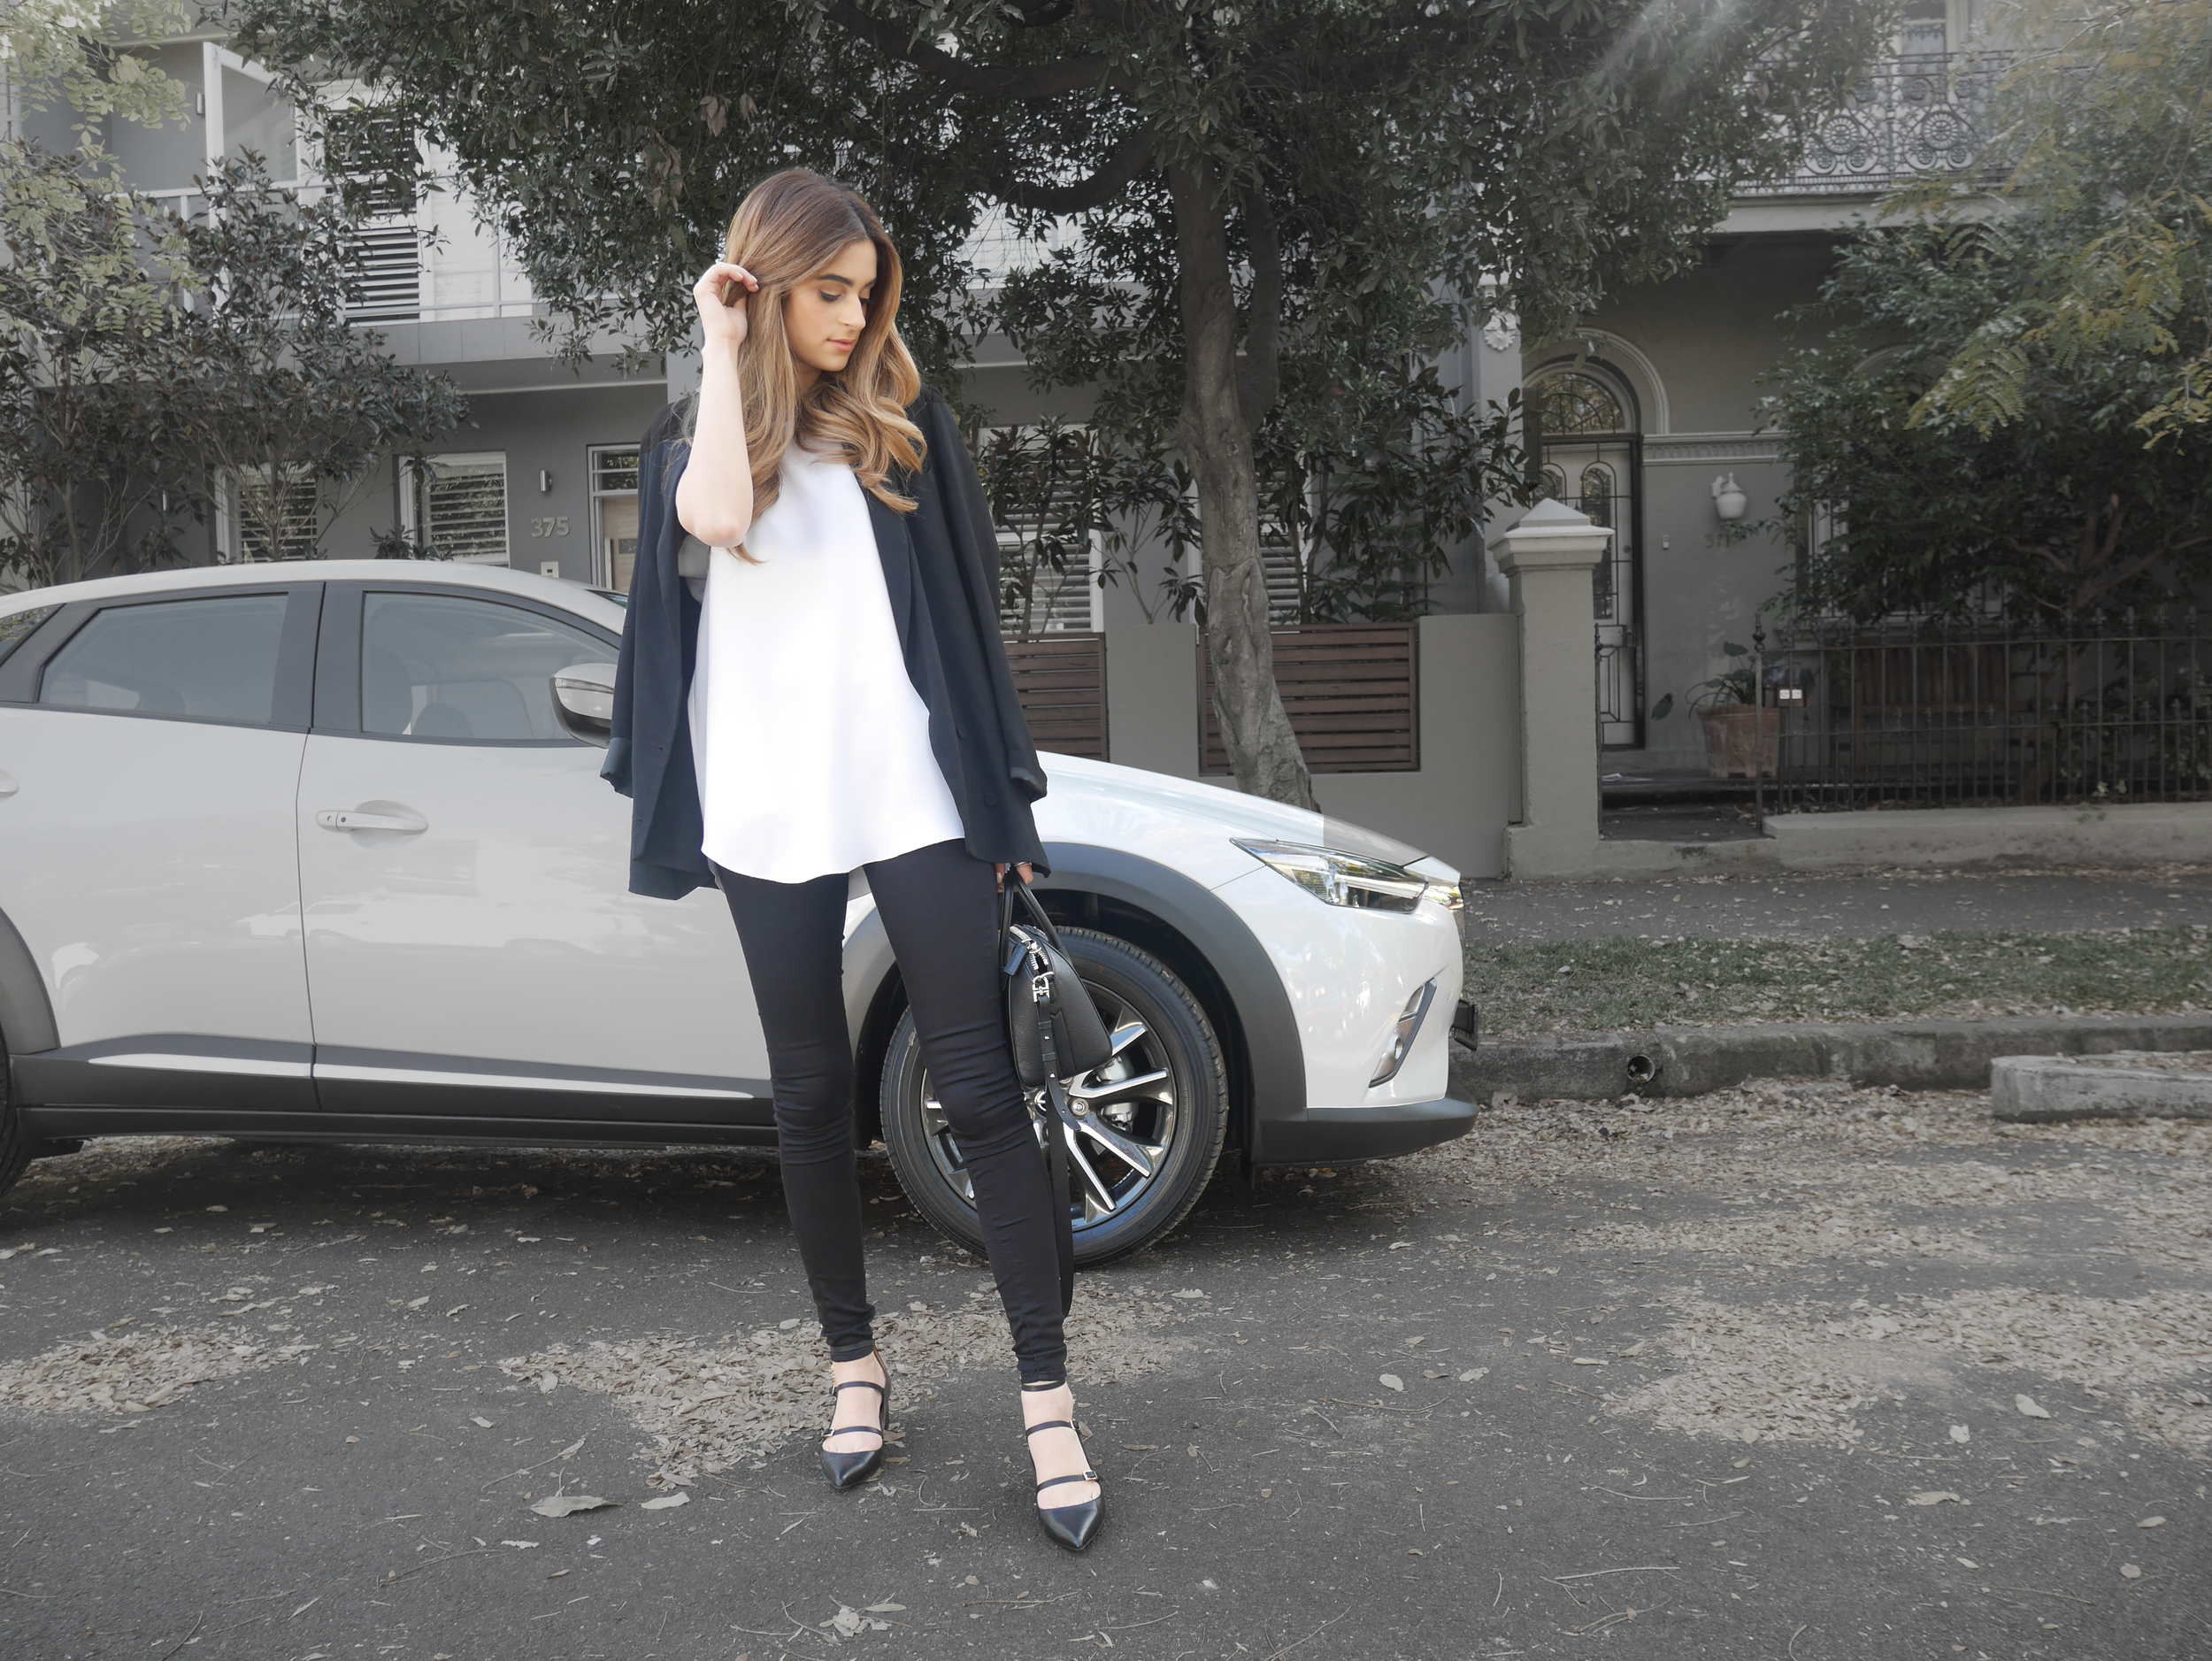 Wearing Ellery, Zimmermann and Topshop for a day of errands in the Mazda CX3